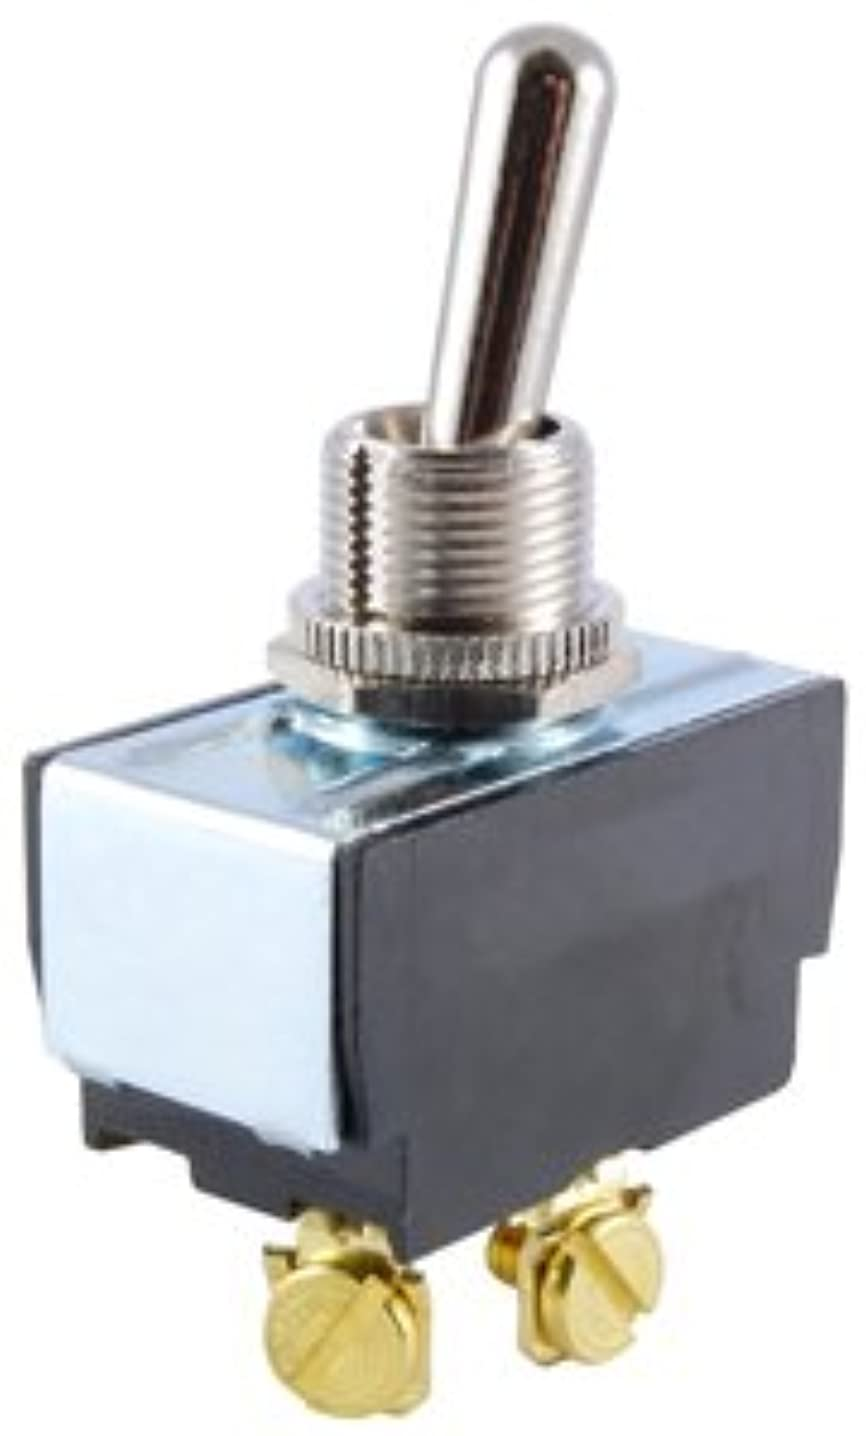 NTE Electronics 54-095 Bat Handle Toggle Switch, Spdt Circuit, On-Off-On Action, Brass/Nickel Plate Actuator, Screw Terminal, 20A, 125V